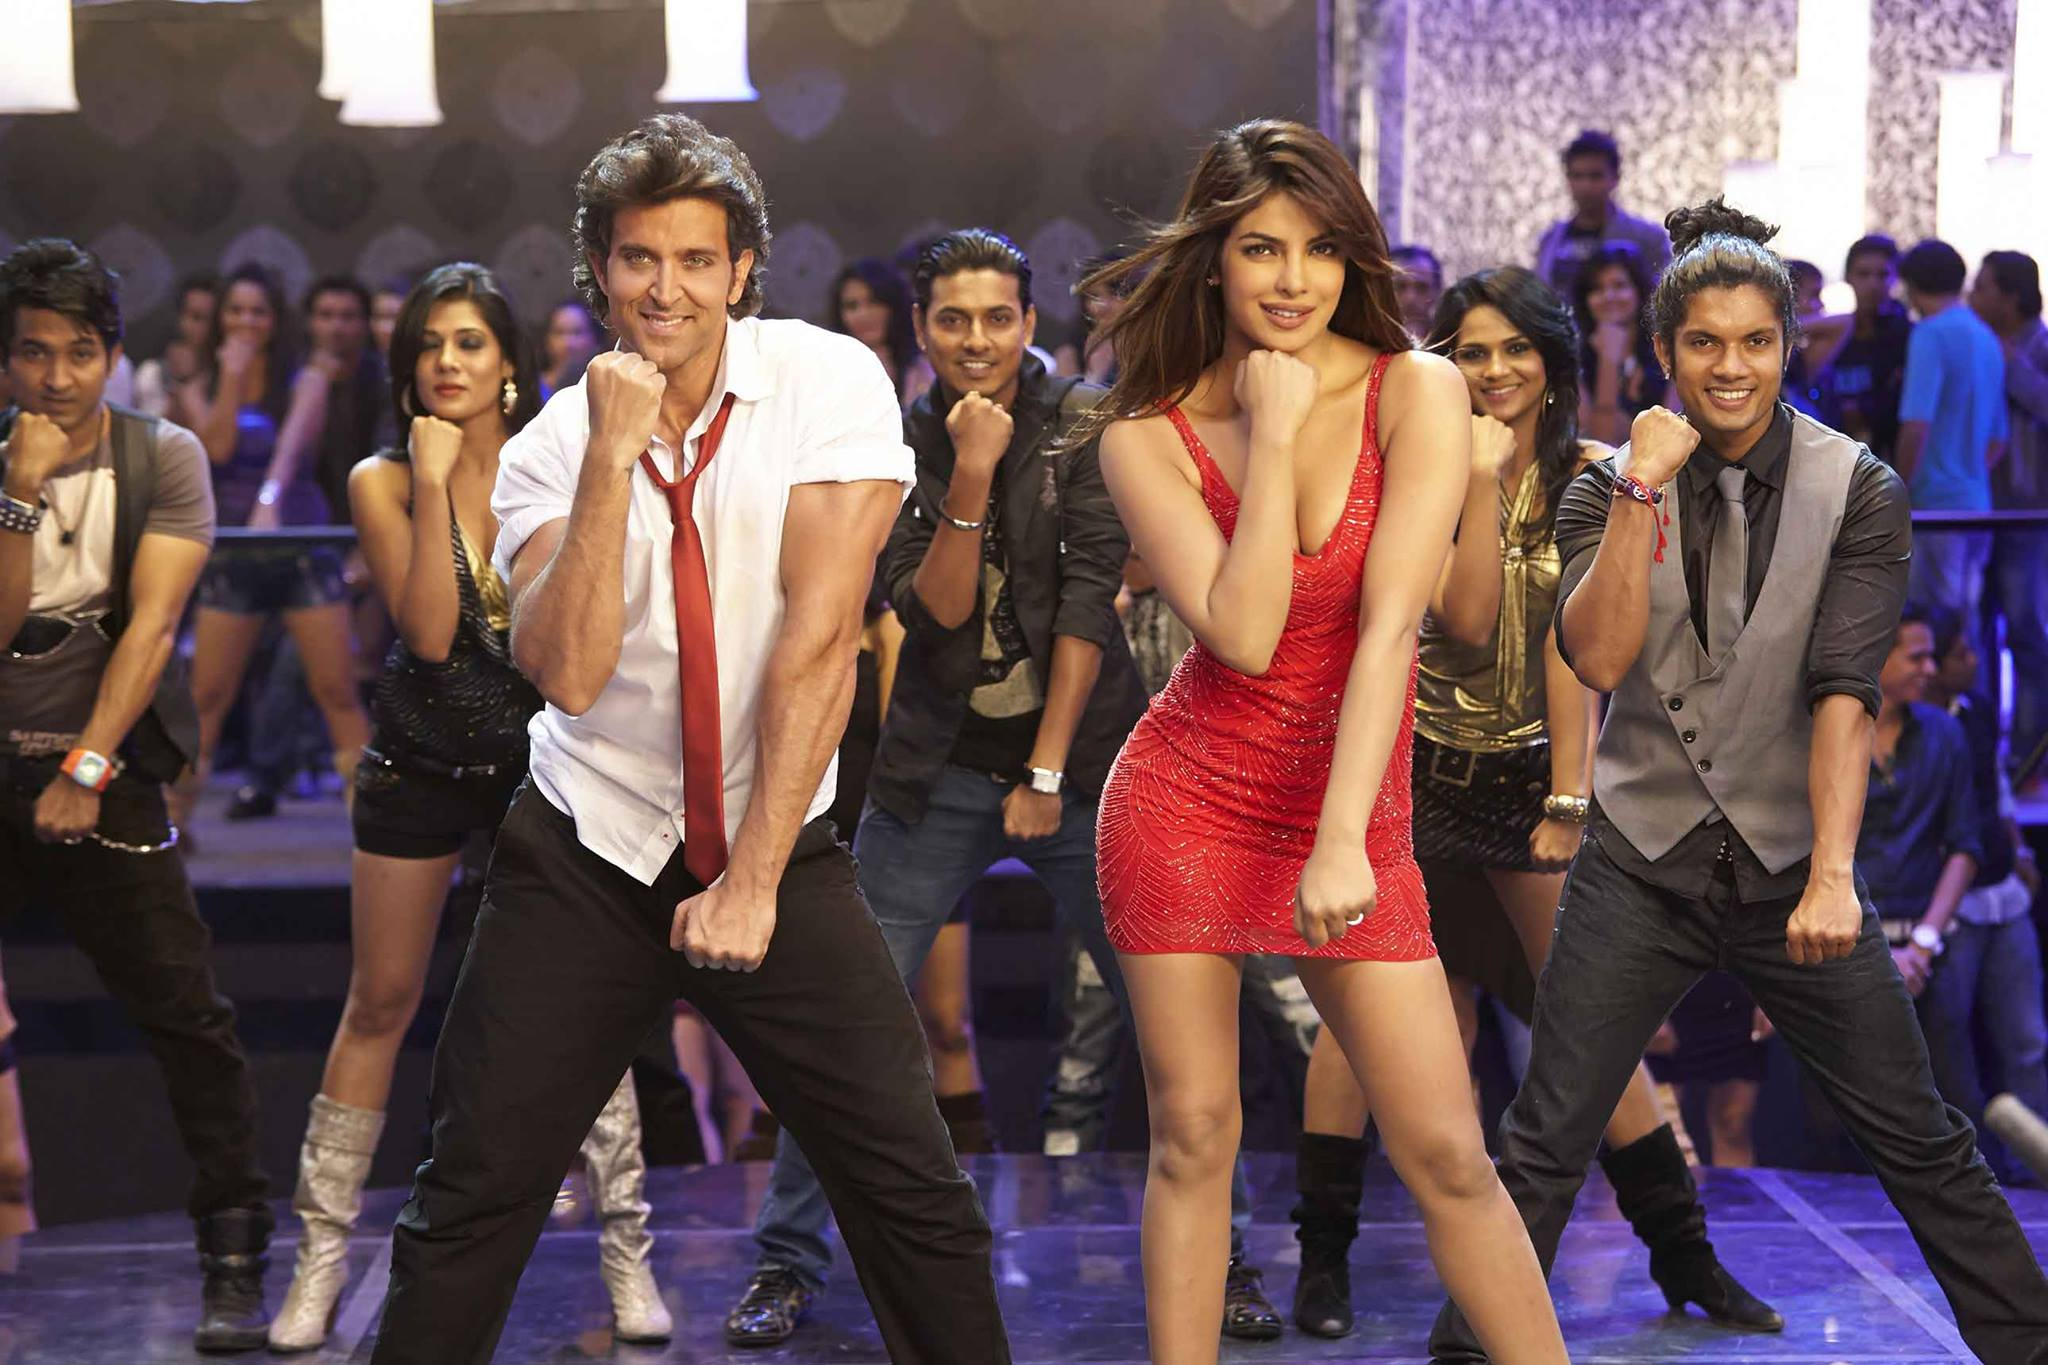 krrish 3: hrithik romances red hot priyanka chopra - indiatimes